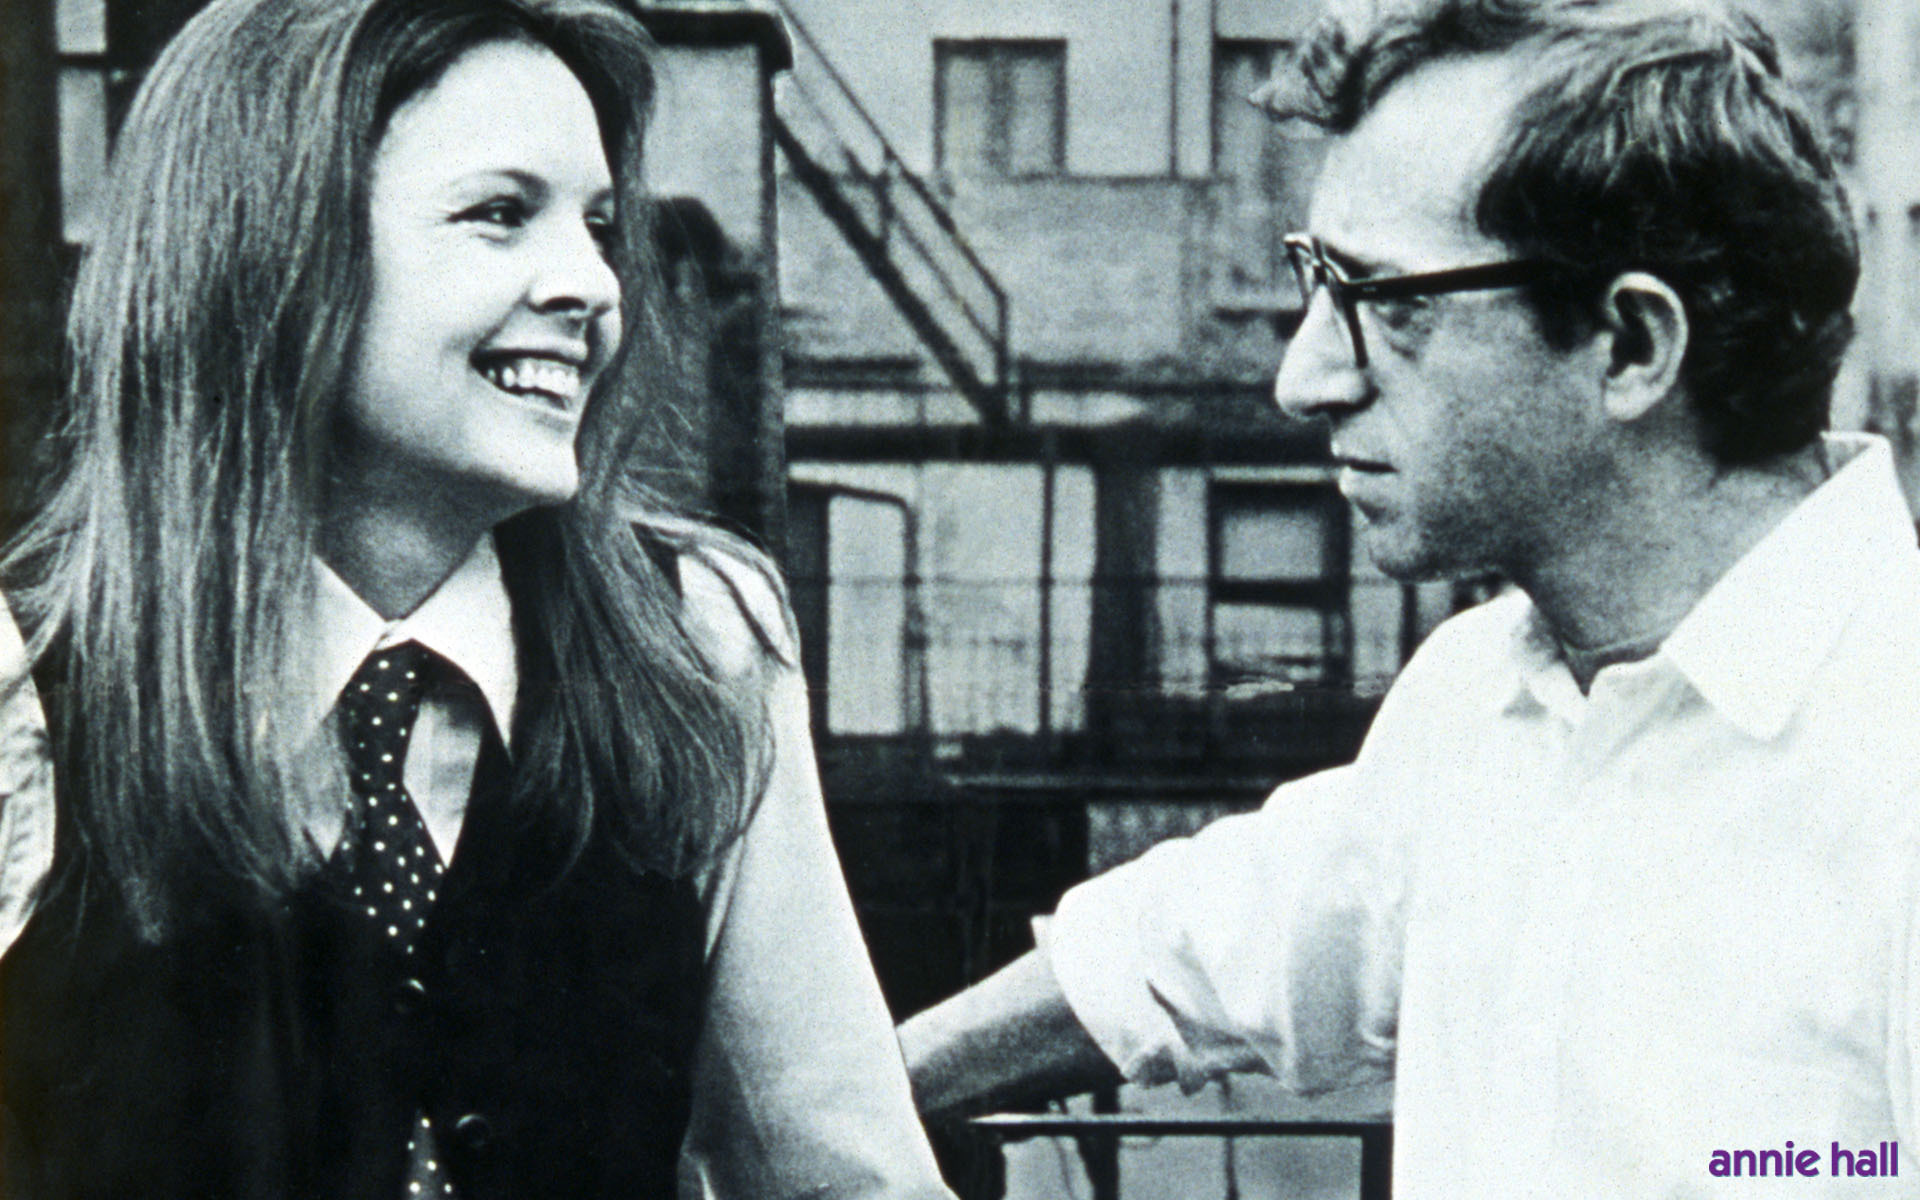 an analysis of annie hall a film by woody allen Annie hall is not your typical romcom, and that much is obvious right off the bat we start with woody allen, in character as alvie singer, looking right.